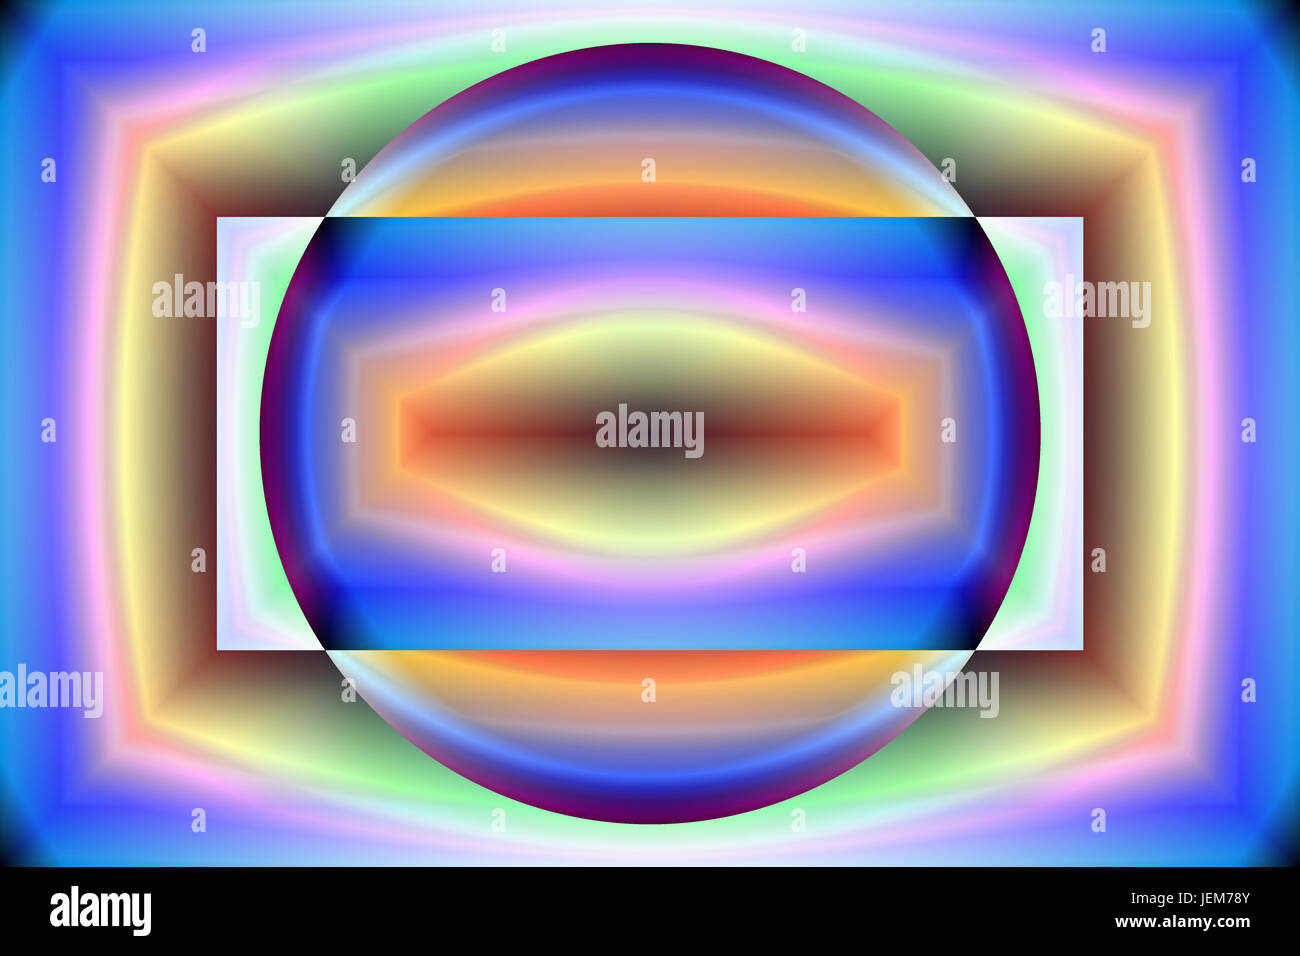 Digital art, abstract three-dimensional objects with soft lighting - Stock Image